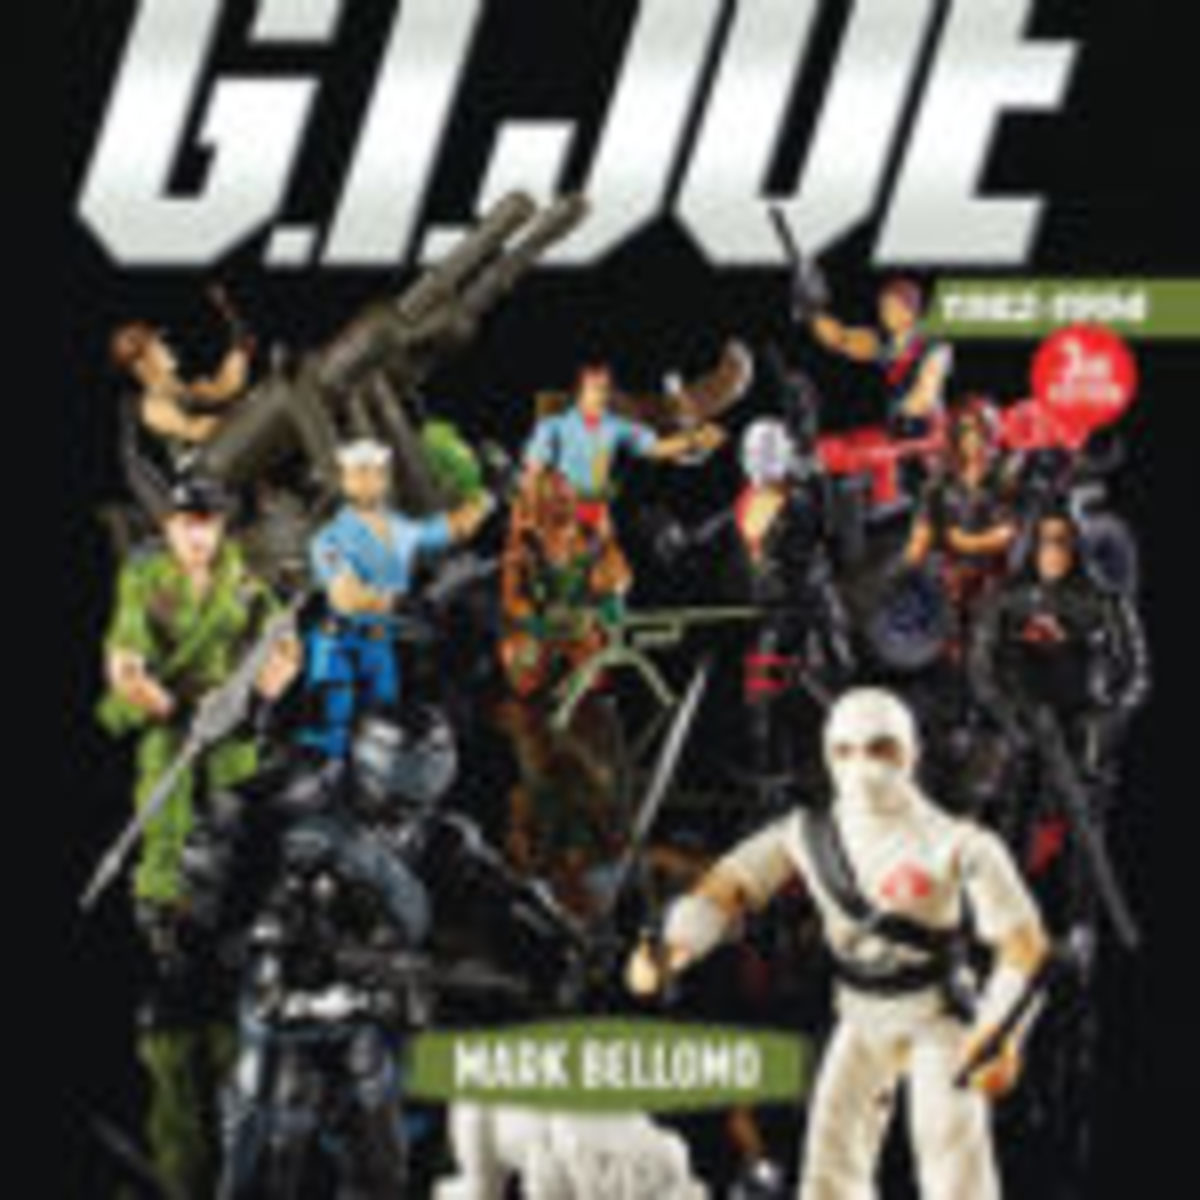 The Ultimate Guide to G.I. Joe, 1982-1994, 3rd Edition, By Mark Bellomo; 8.25 x 10.875, hardcover, 336 pages. ISBN-13: 9781440248795; List Price: $35. Available now on Amazon.com.